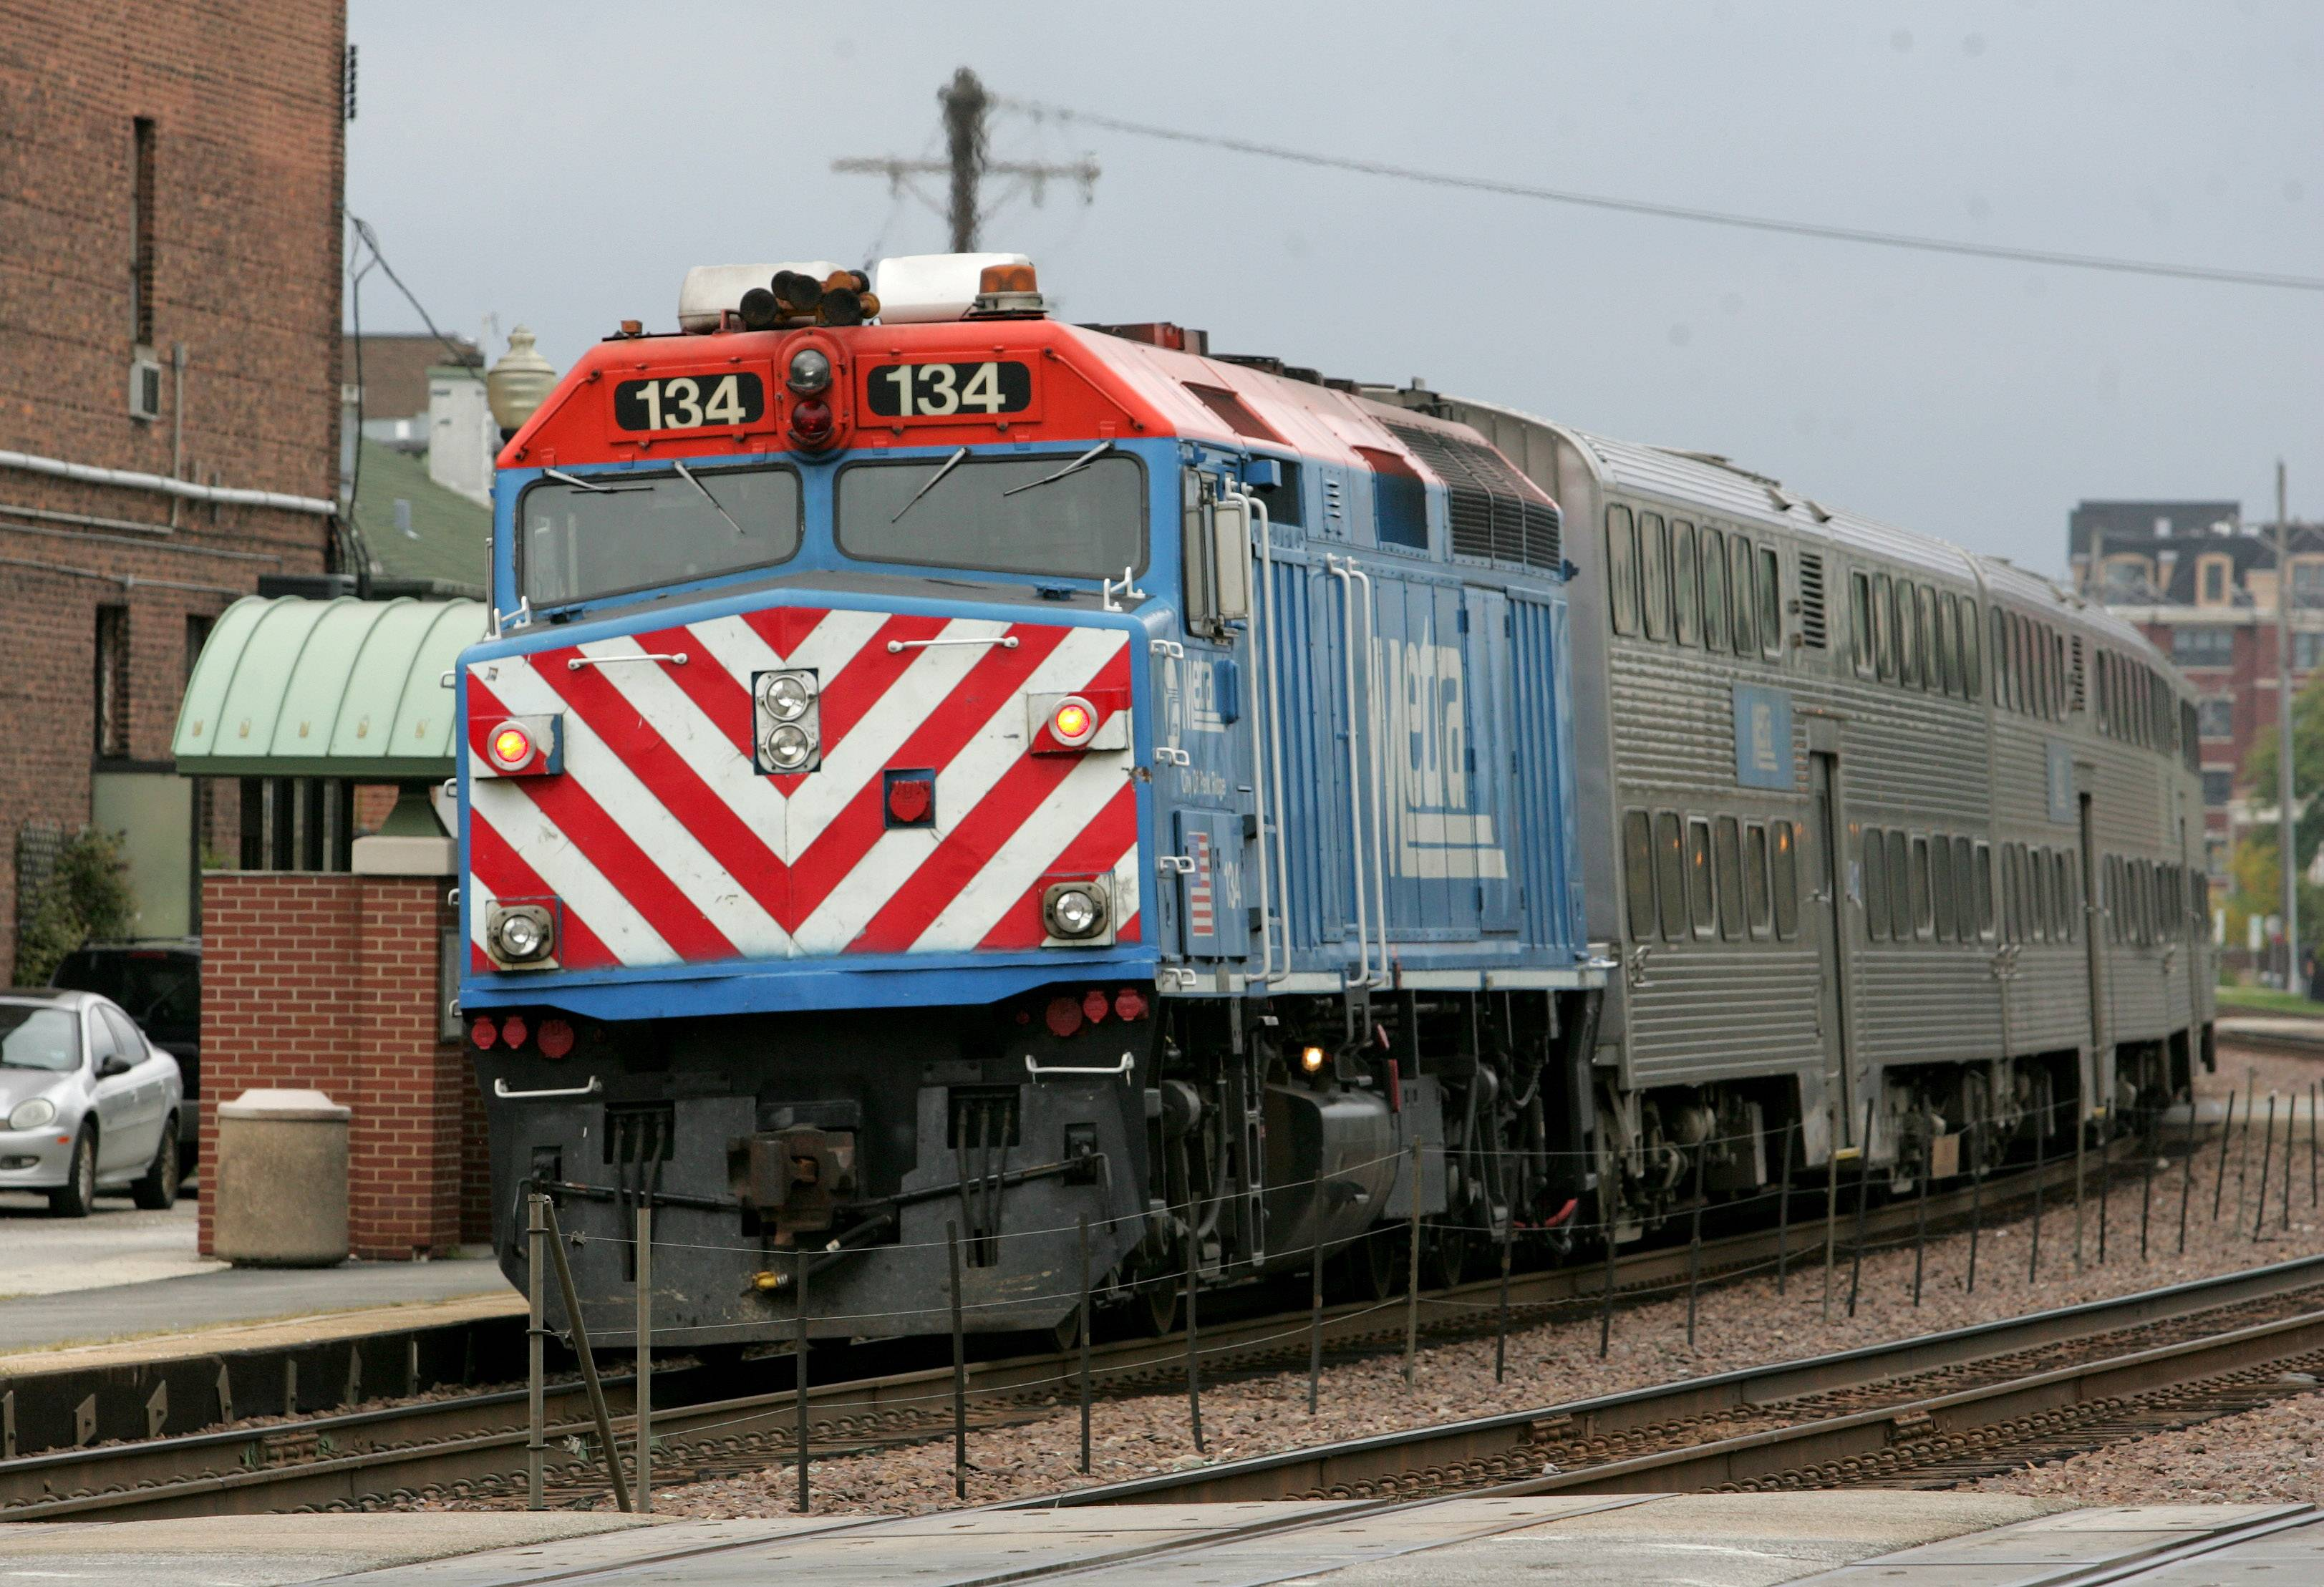 Metra trains will likely be traveling on the same routes without expansions for years to come unless there's a windfall.